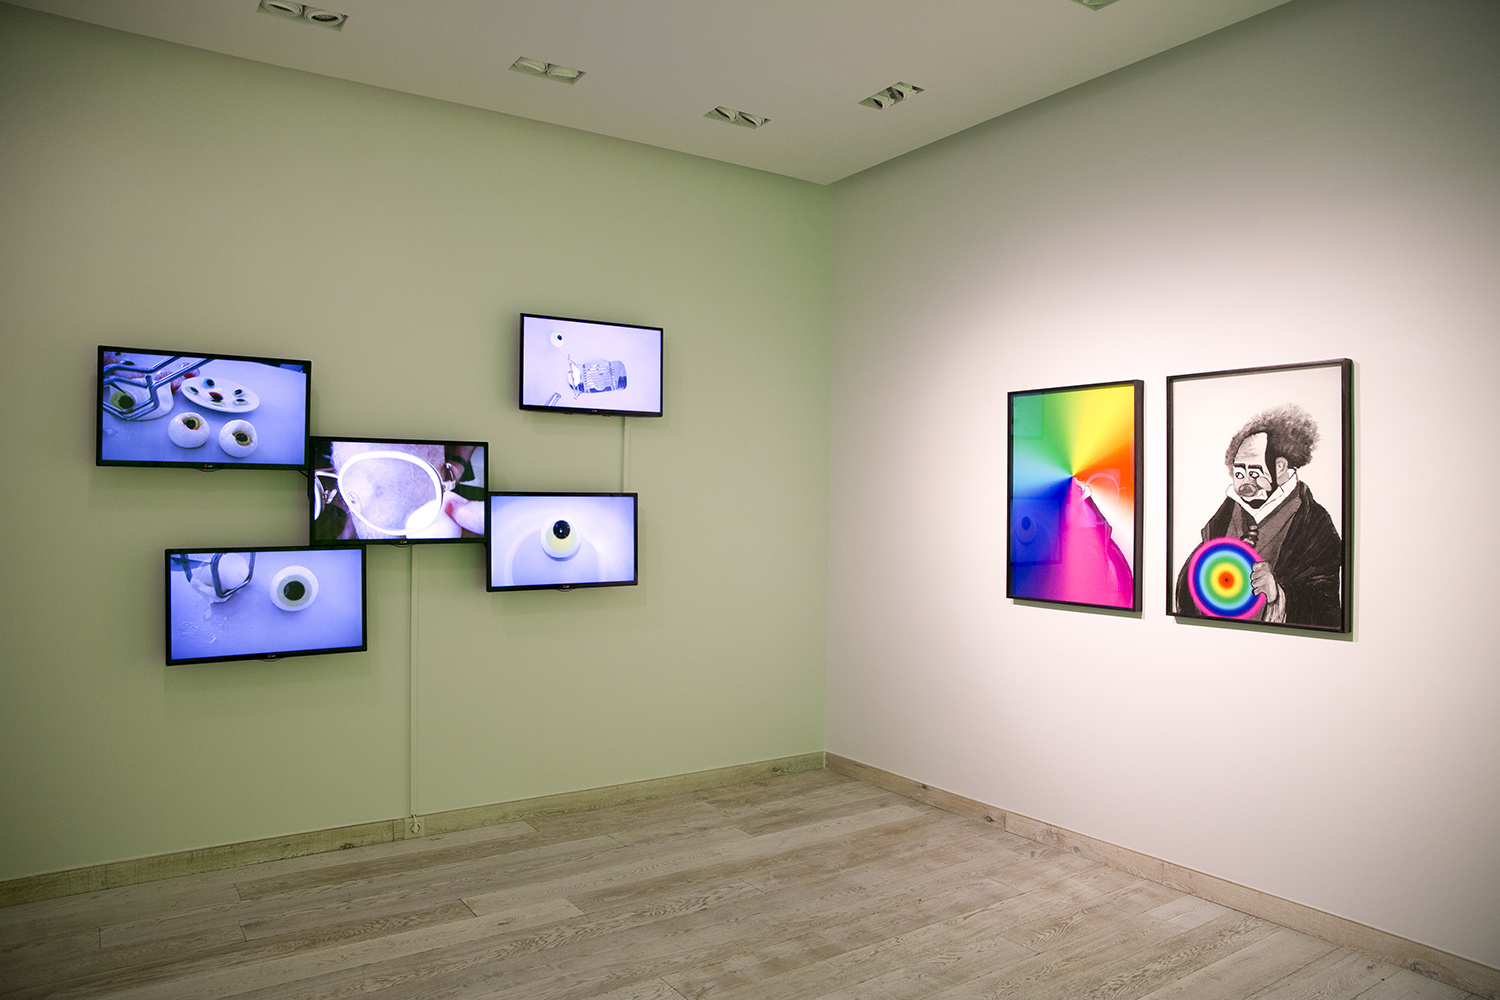 (L) Lou Hubbard, Eye Ops (2013), 5 x single channel videos. Courtesy of the artist and Sarah Scout Presents, Melbourne (R) Veronica Kent, 'Clown Transfer 1' and 'Clown Transfer 2', digital prints framed.  Courtesy of the artist and Sarah Scout Presents, Melbourne